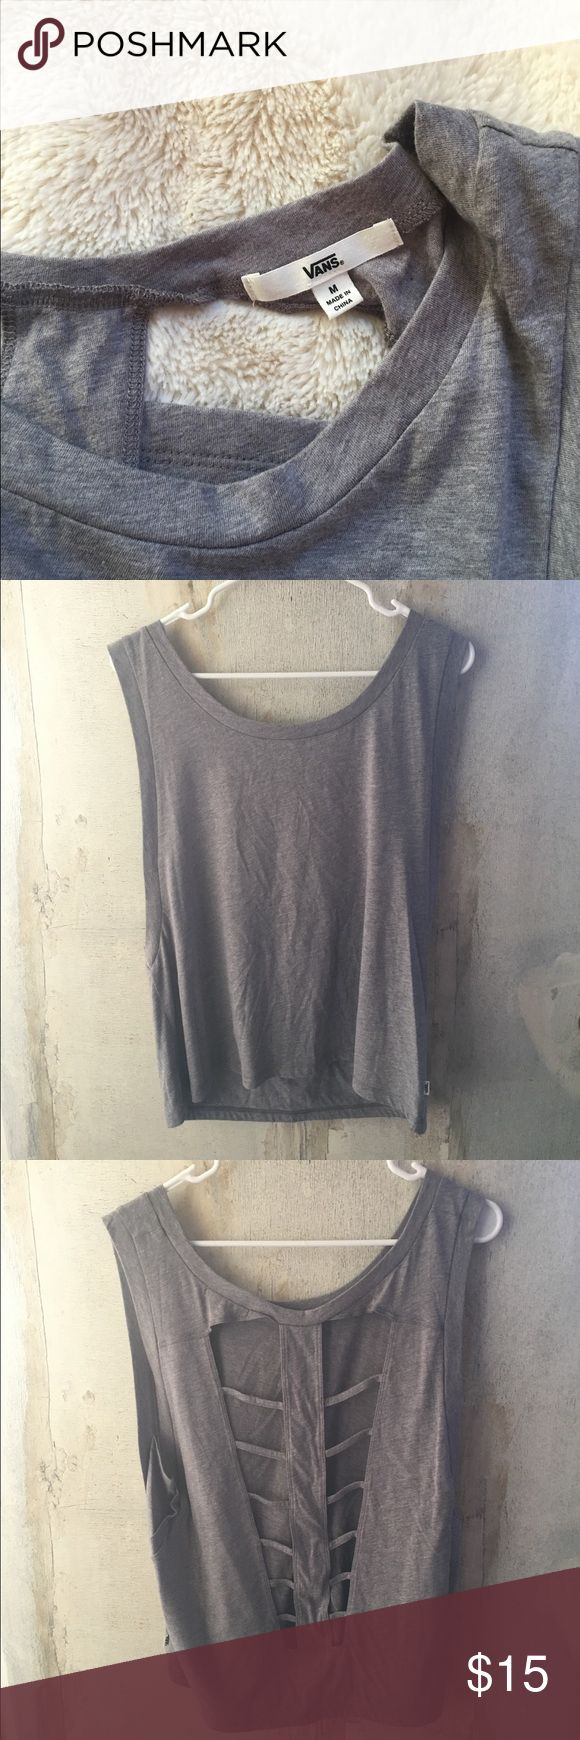 Vans cutout tank top New w/o tags. Purchased for Vegas but never got to using it. Super cute cut-out, perfect with a bandeau or bikini under. It's of a brown/grey color.. somewhere in between. Women's M. Vans Tops Tank Tops